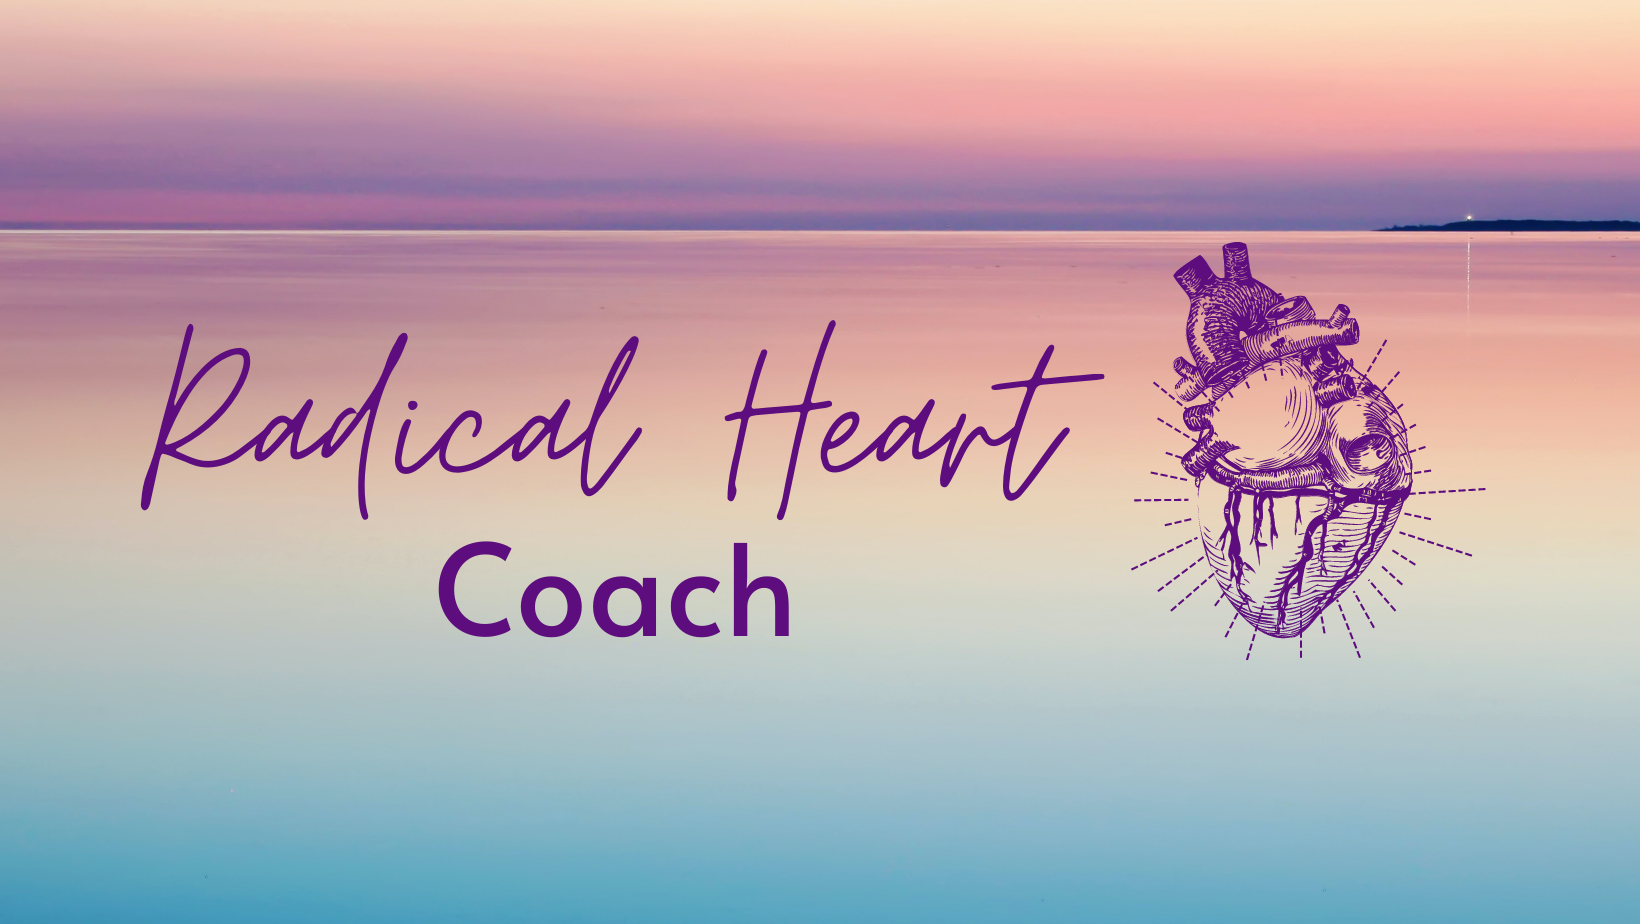 Radical Heart Coach